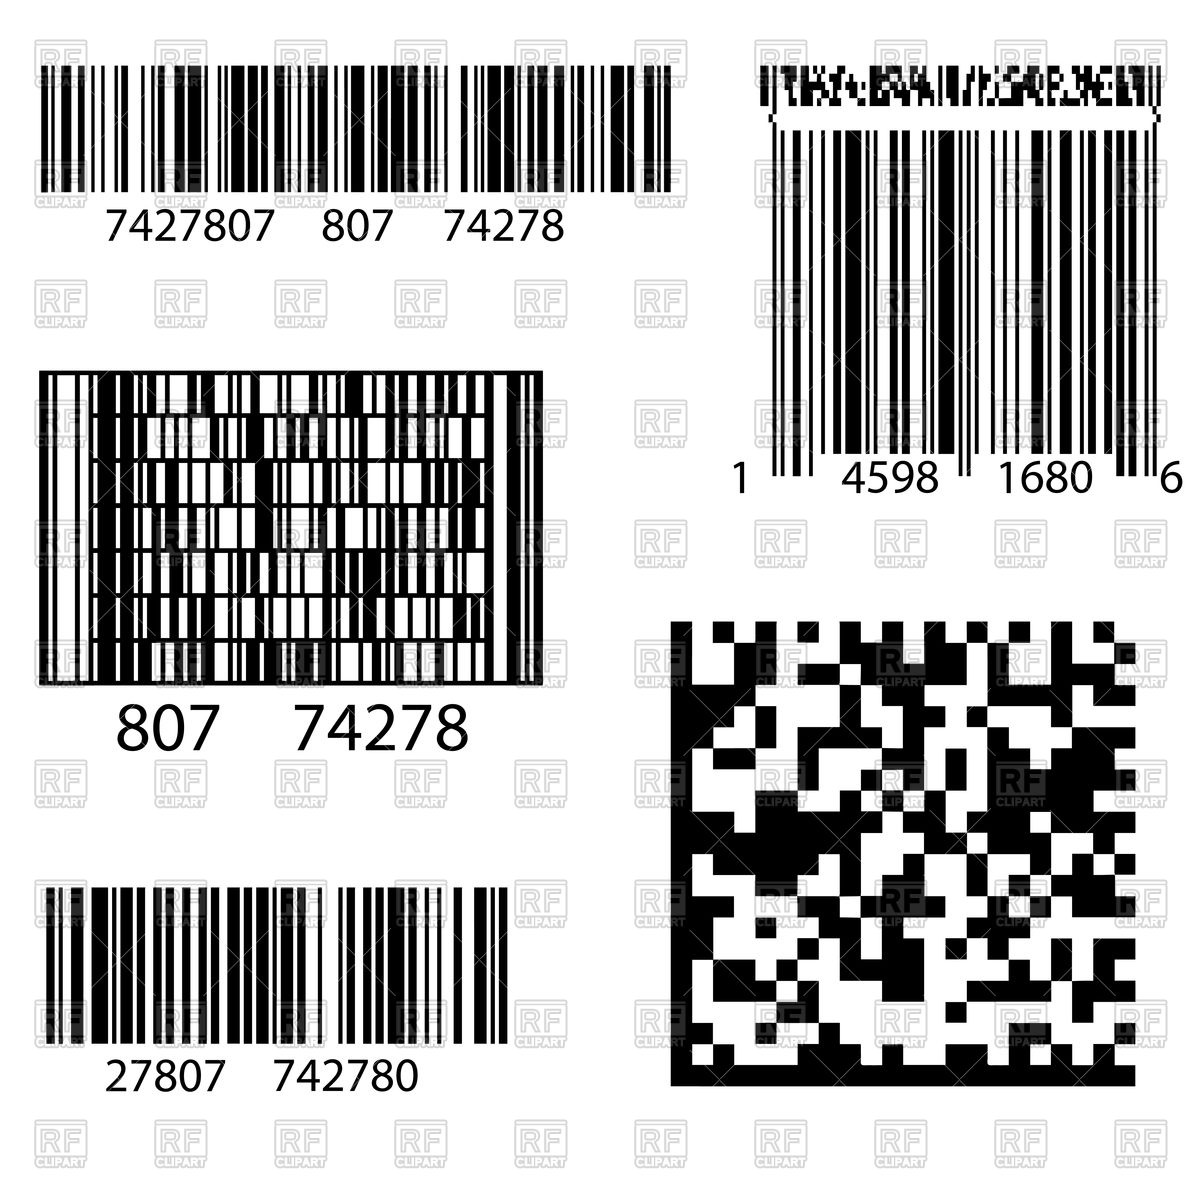 Product barcode 2d square label.